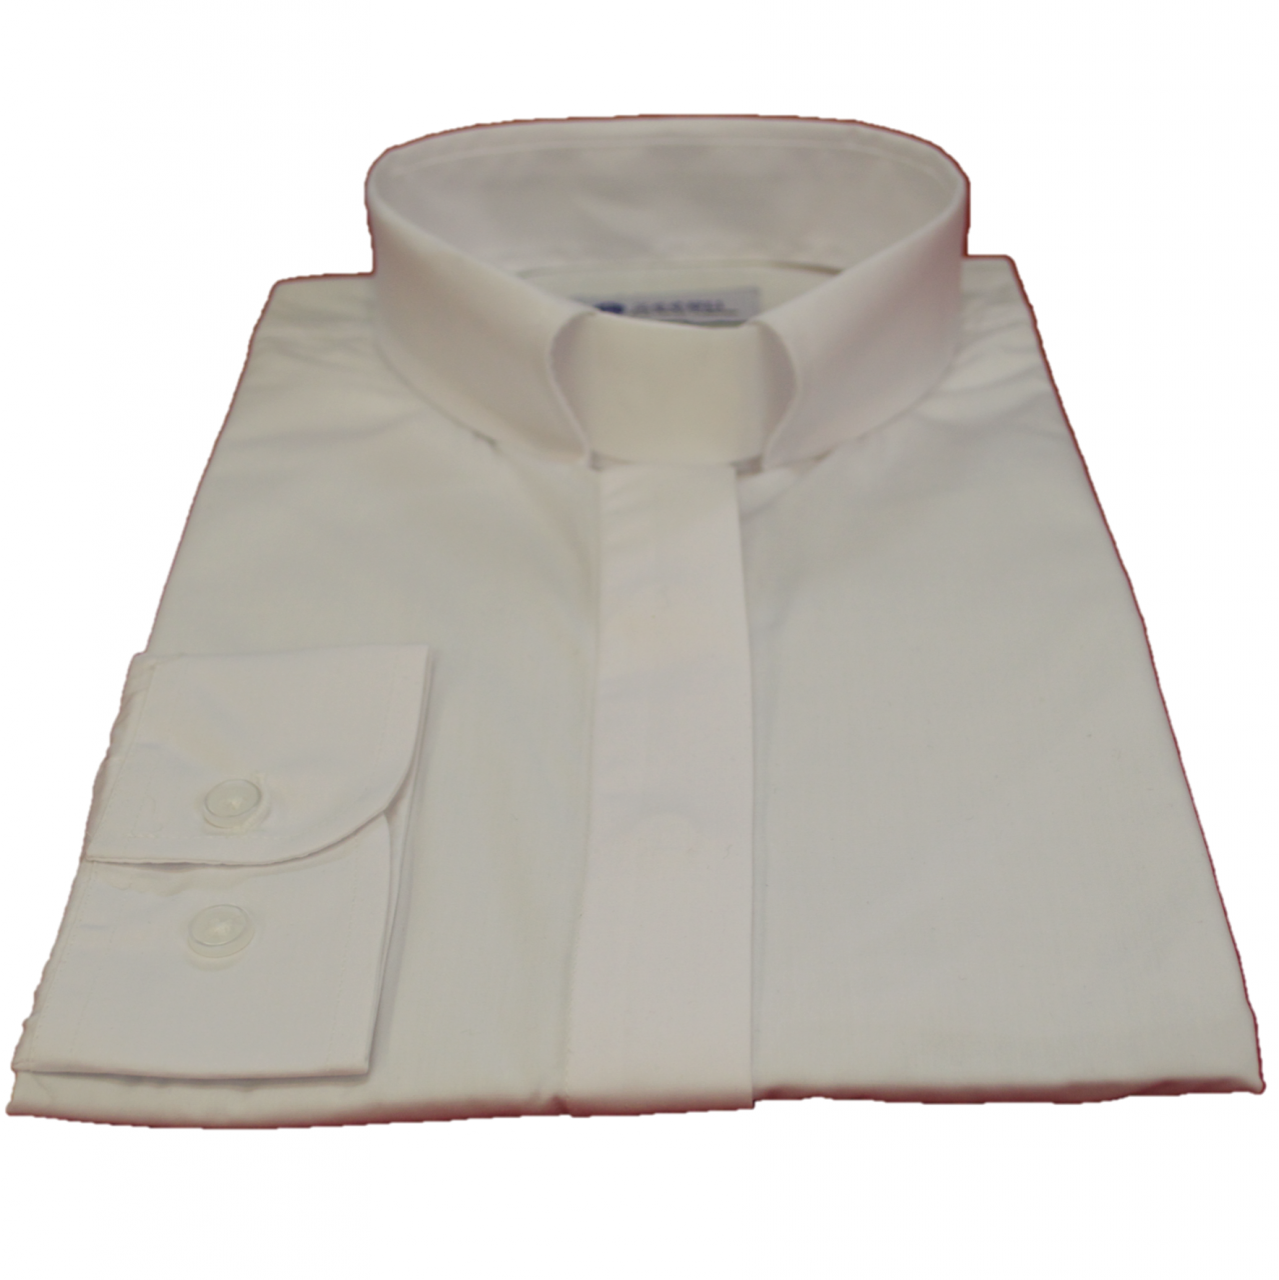 503. Women's Long-Sleeve Tab Collar Clergy Shirt - White